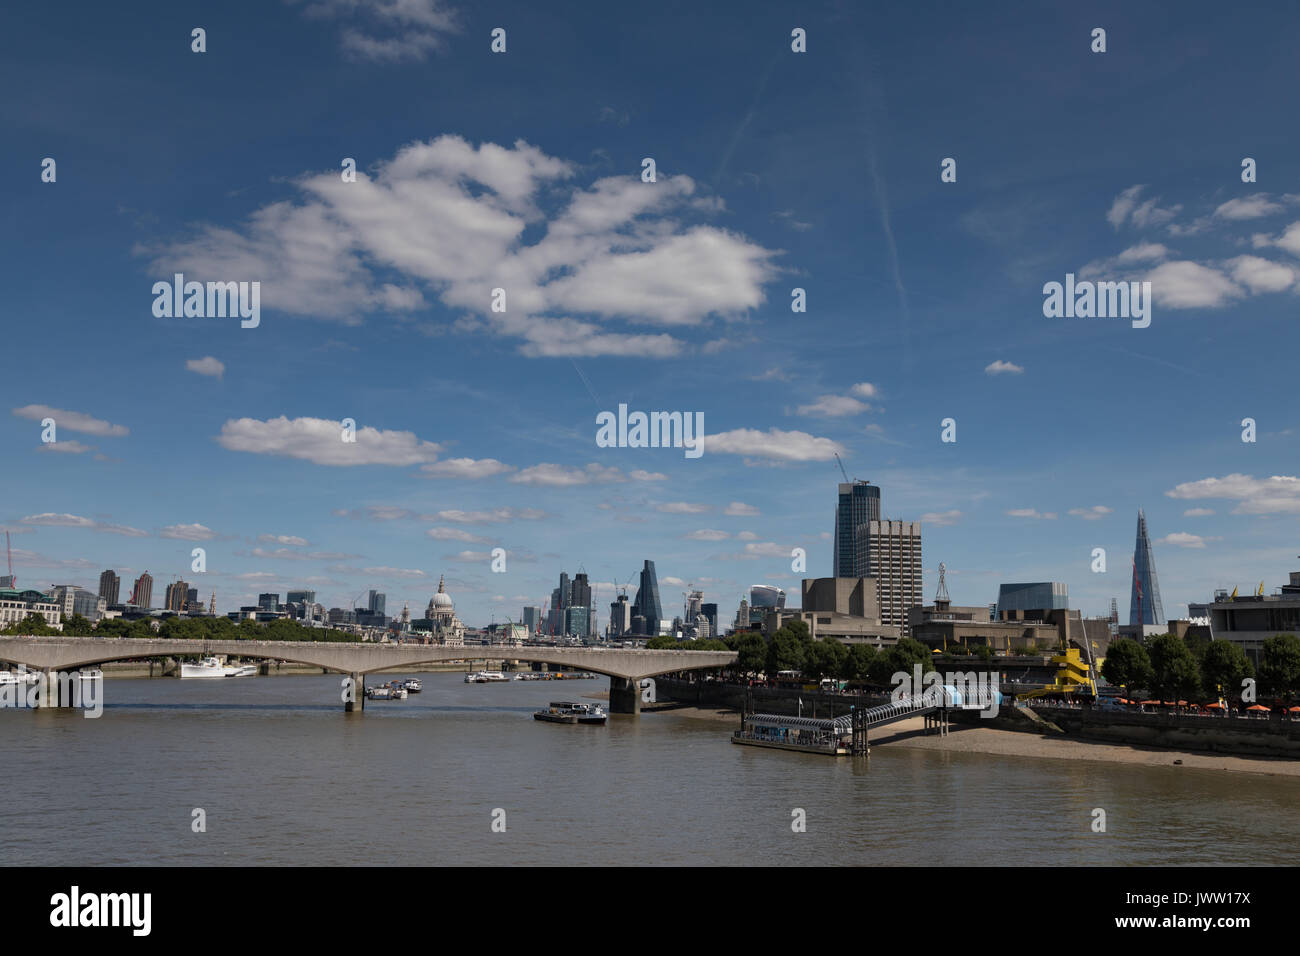 River Thames, Embankment,London, UK. 13 August 2017. UK Weather: Warm sunny day with light cloud over London skyline. Stock Photo